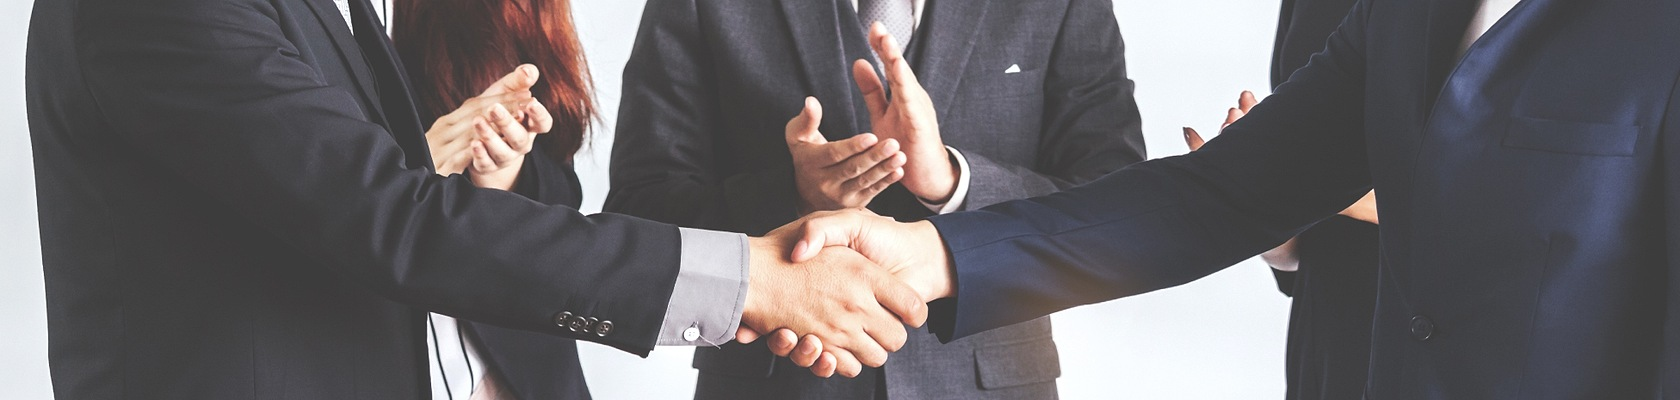 photo of an M&A deal - people shaking hands